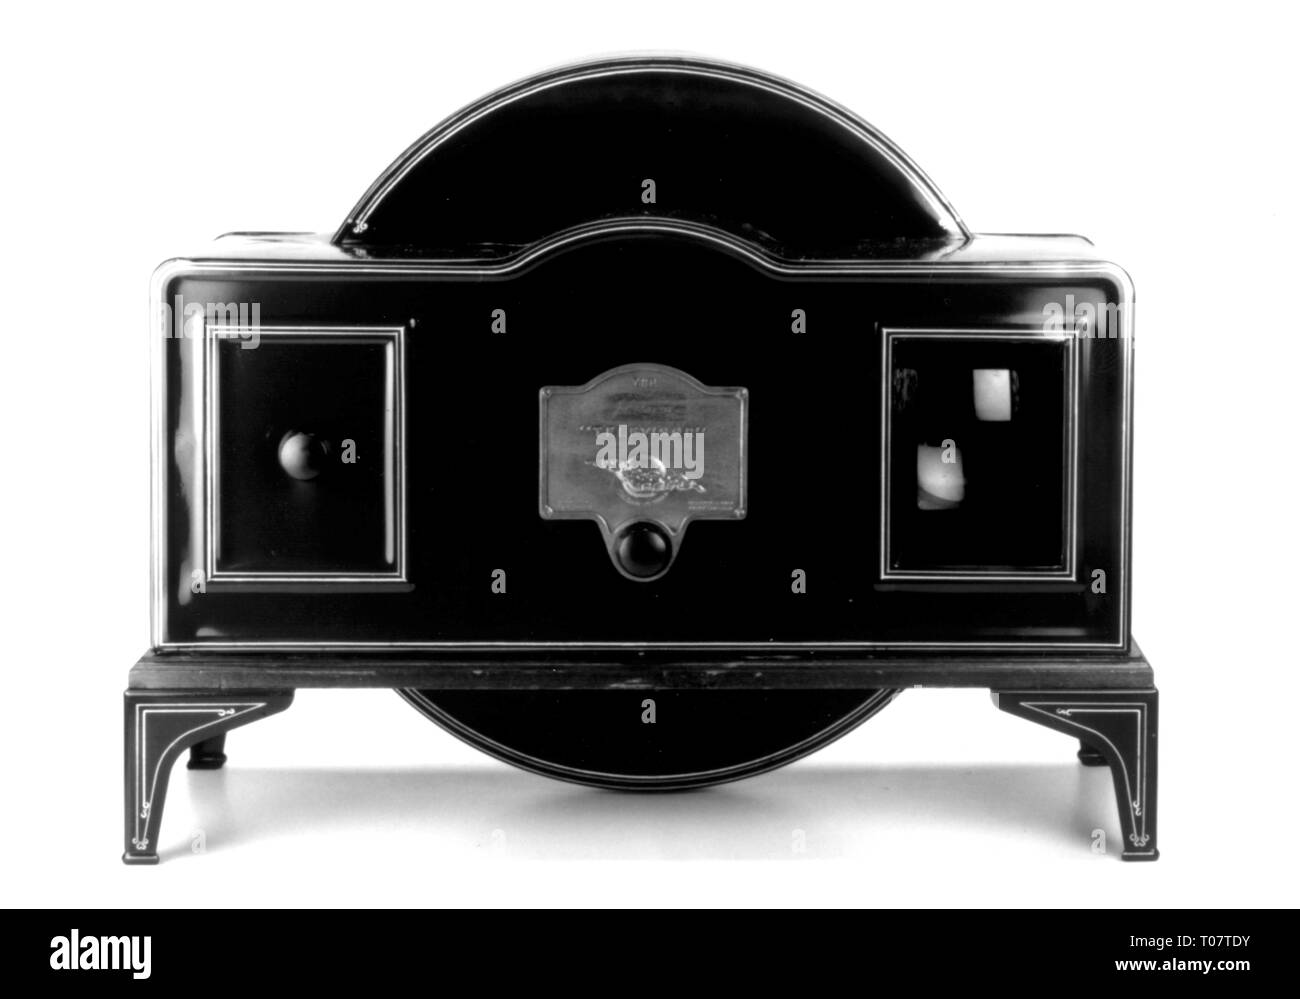 broadcast, television set, Baird Televisor, television set with Nipkow disk, Plessey Company, Ilford, England, 1929, Additional-Rights-Clearance-Info-Not-Available - Stock Image